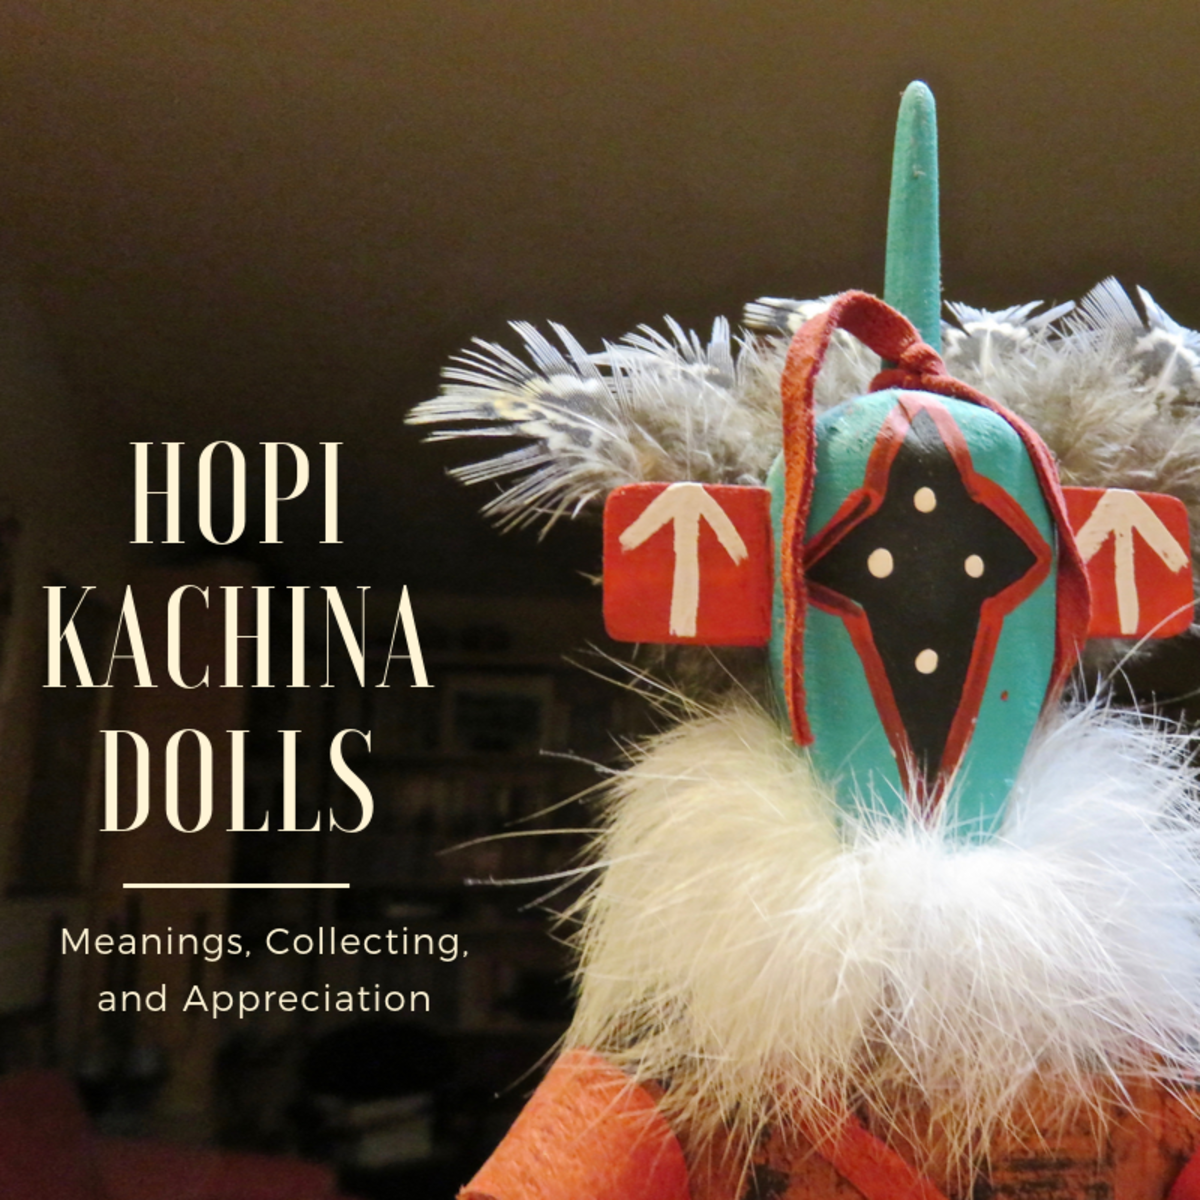 Hopi Kachina (Katsina) Native American Art Hand-Carved Dolls: Meanings, Collecting, and Appreciation